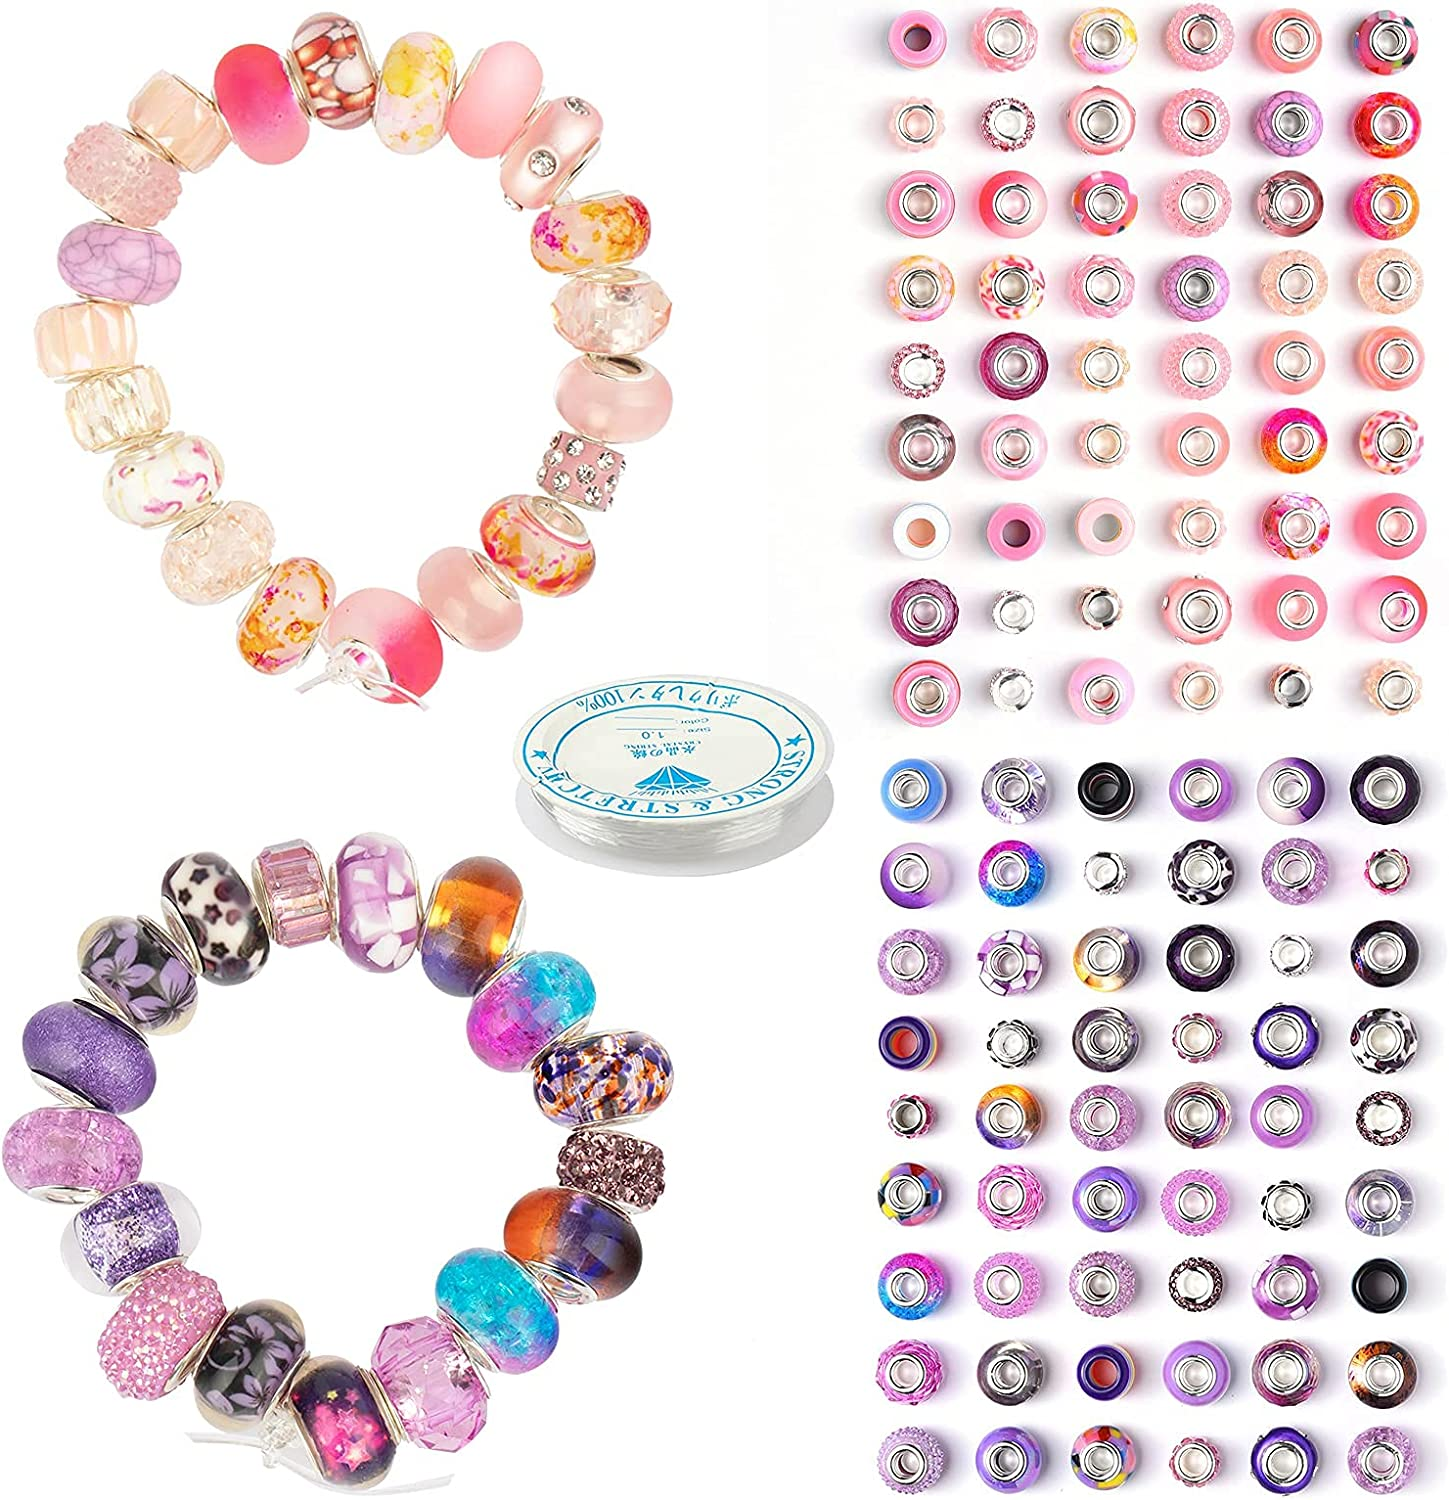 YAIKOAI European Beads Blue and Sales Kansas City Mall for sale Red